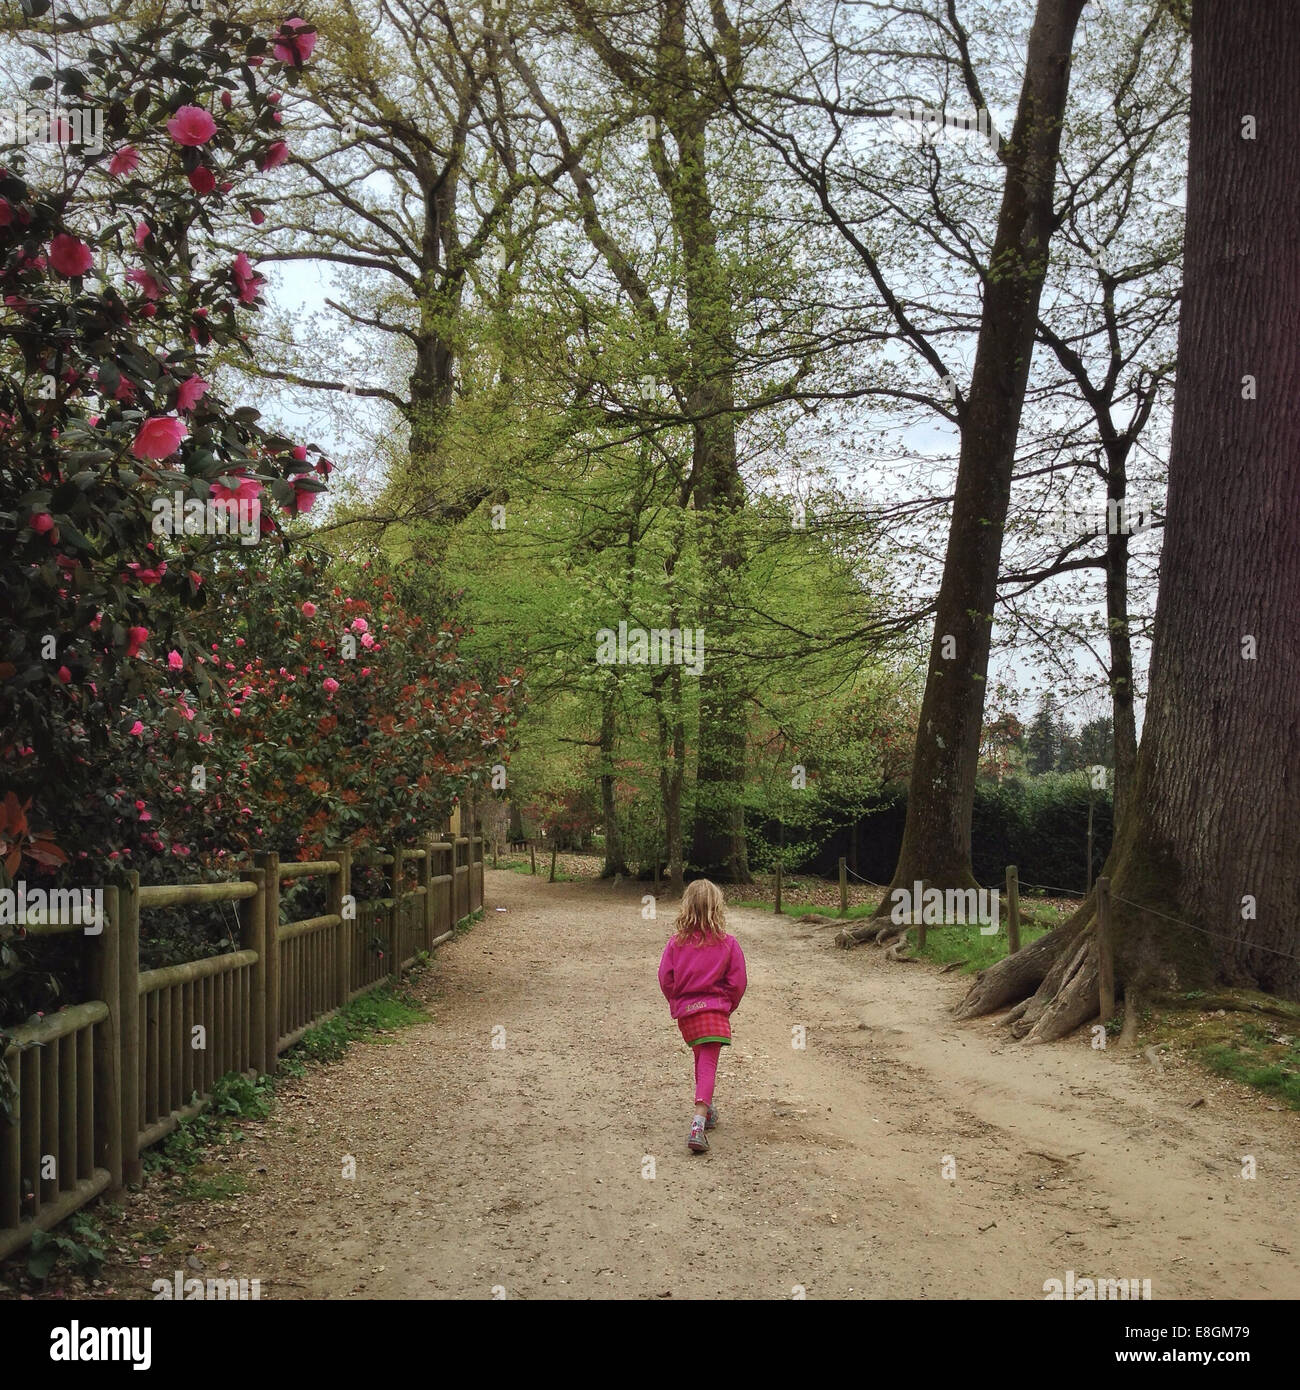 France, Ile-de-France, Yvelines, Rambouillet, Thoiry, Girl (12-13) in park Photo Stock